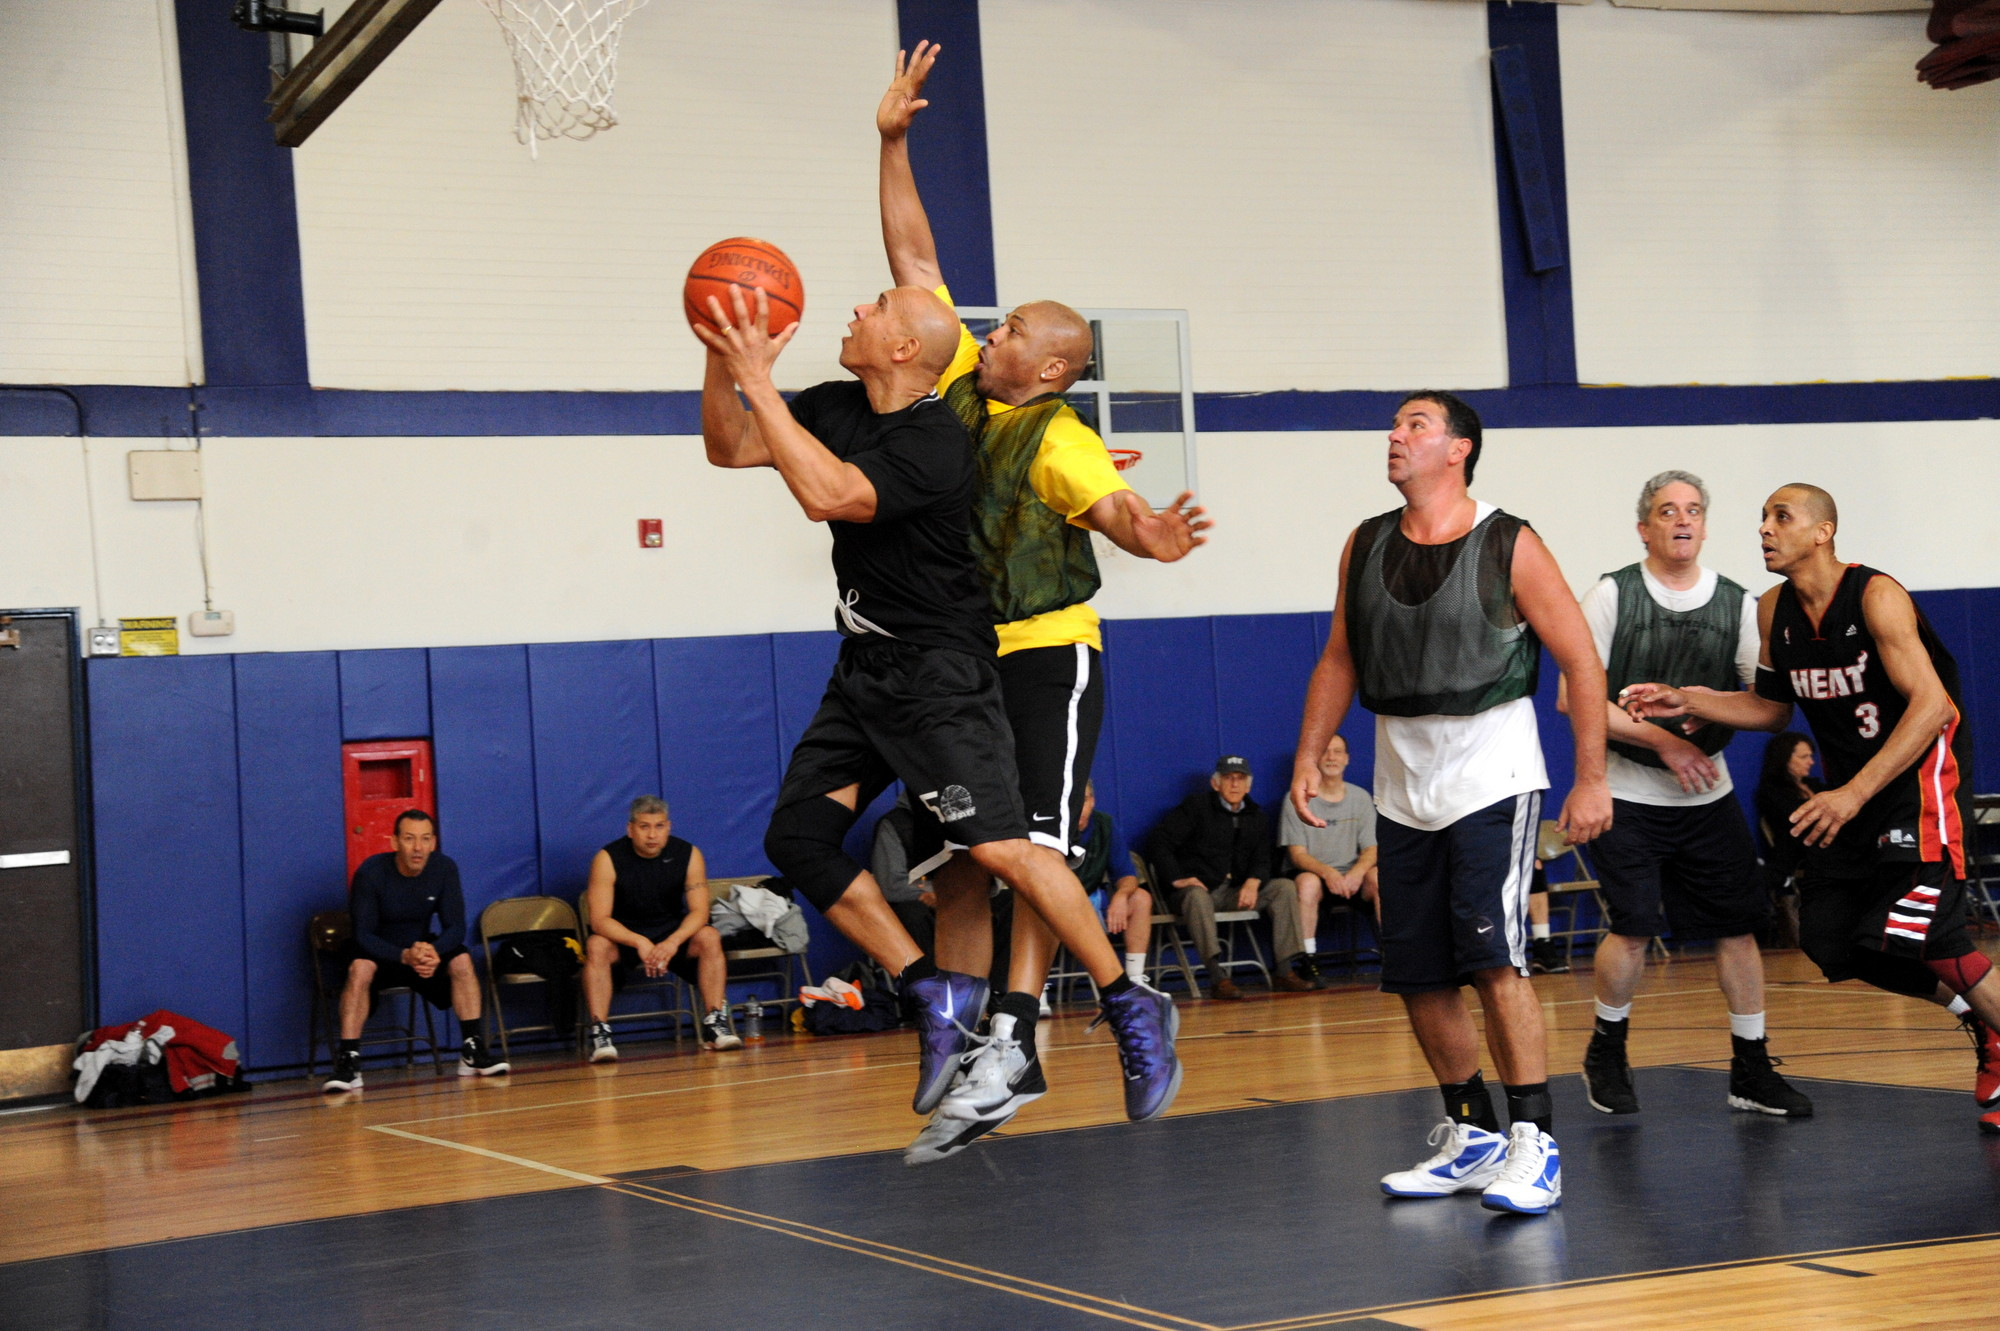 Five Towns Community Chest held its annual Youth Board Basketball Tournament at the Hebrew Academy of the Five Towns and Rockaway's new gym last Sunday.  Vincent Riddock attempted to block Ray Serrano's shot in an adult division game.